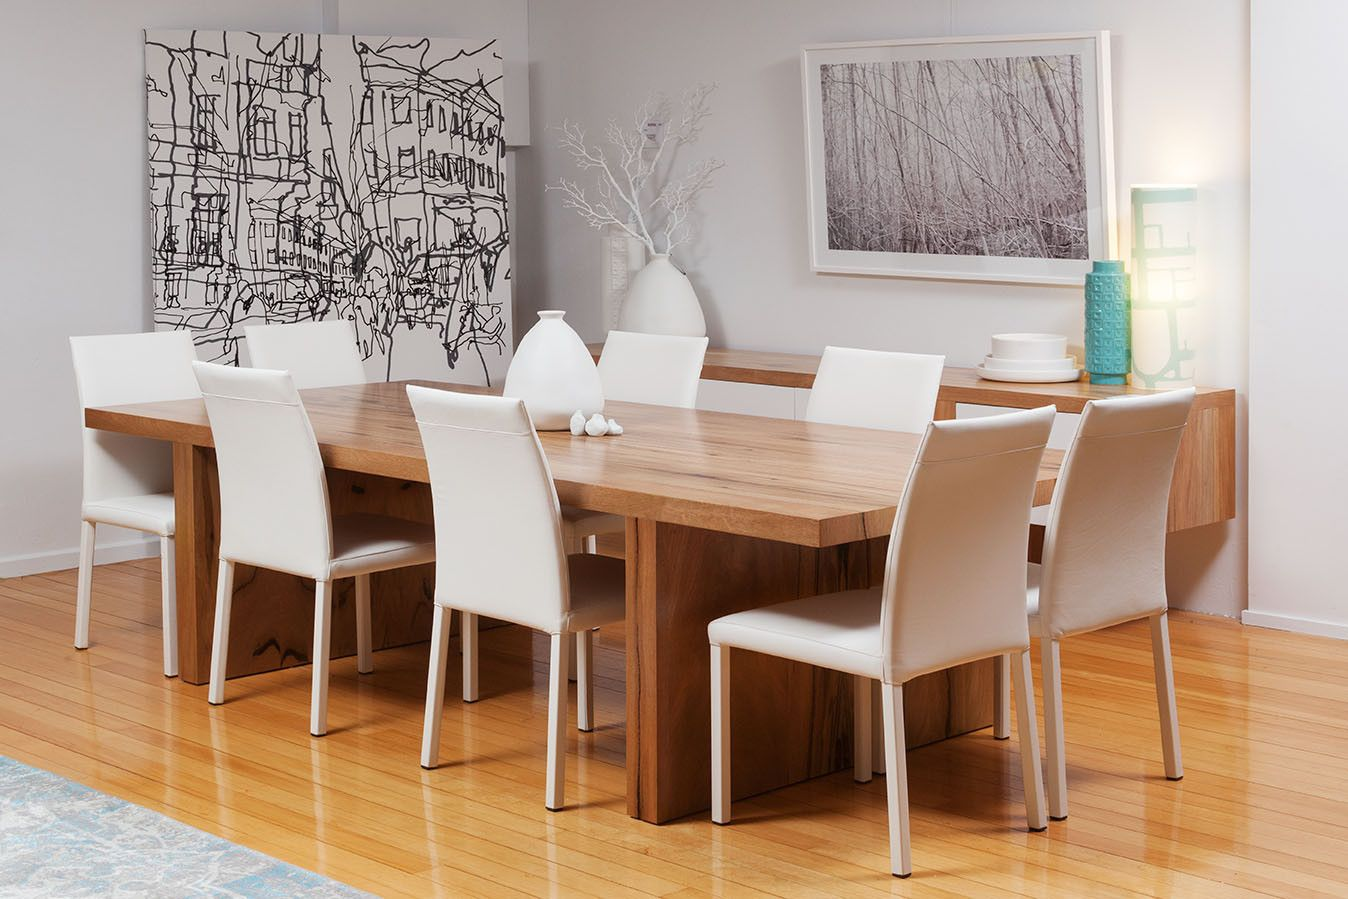 The Edge Solid Marri Dining Table And Italian White Leather Chairs